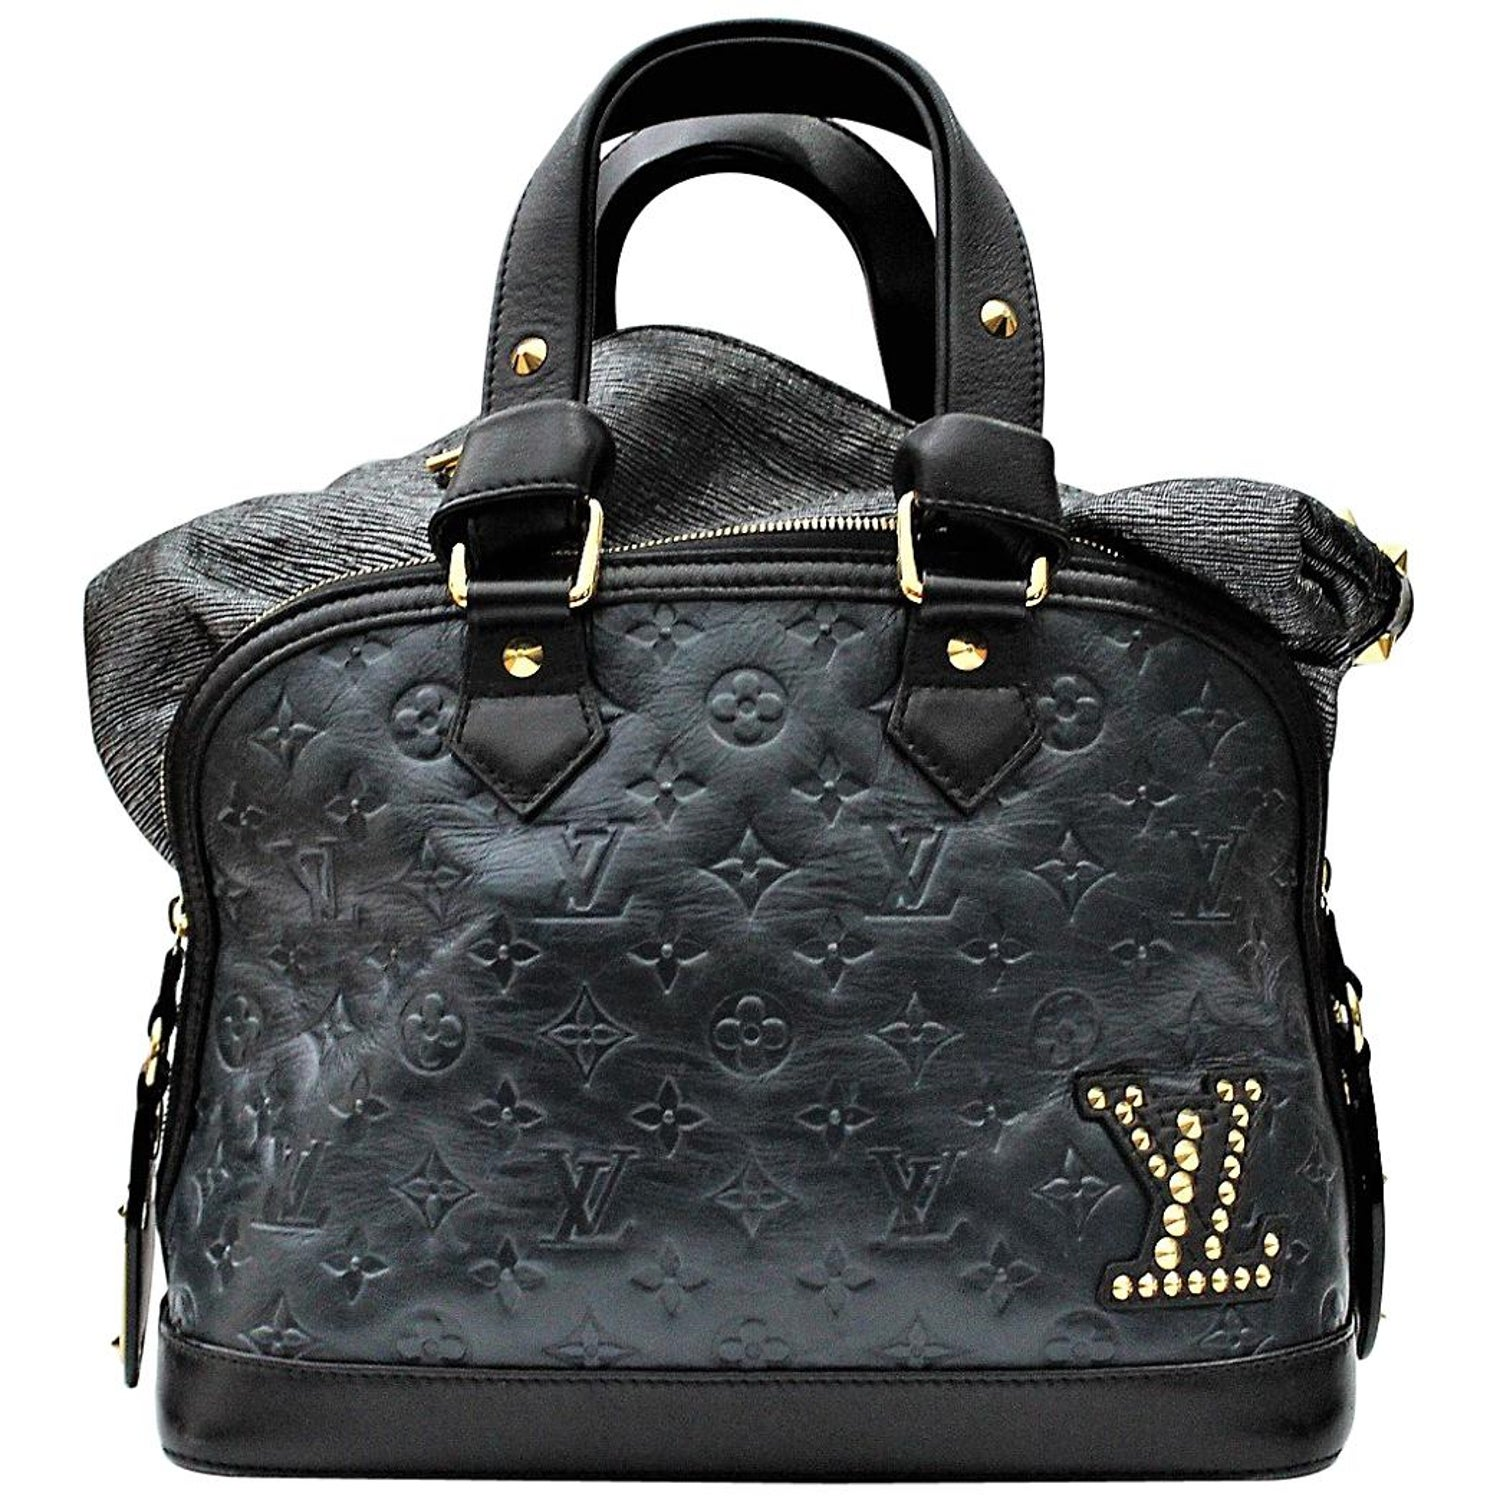 f560fb8a9541 Louis Vuitton Limited Edition Blue Monogram Double Jeu Neo-Alma Bag For  Sale at 1stdibs